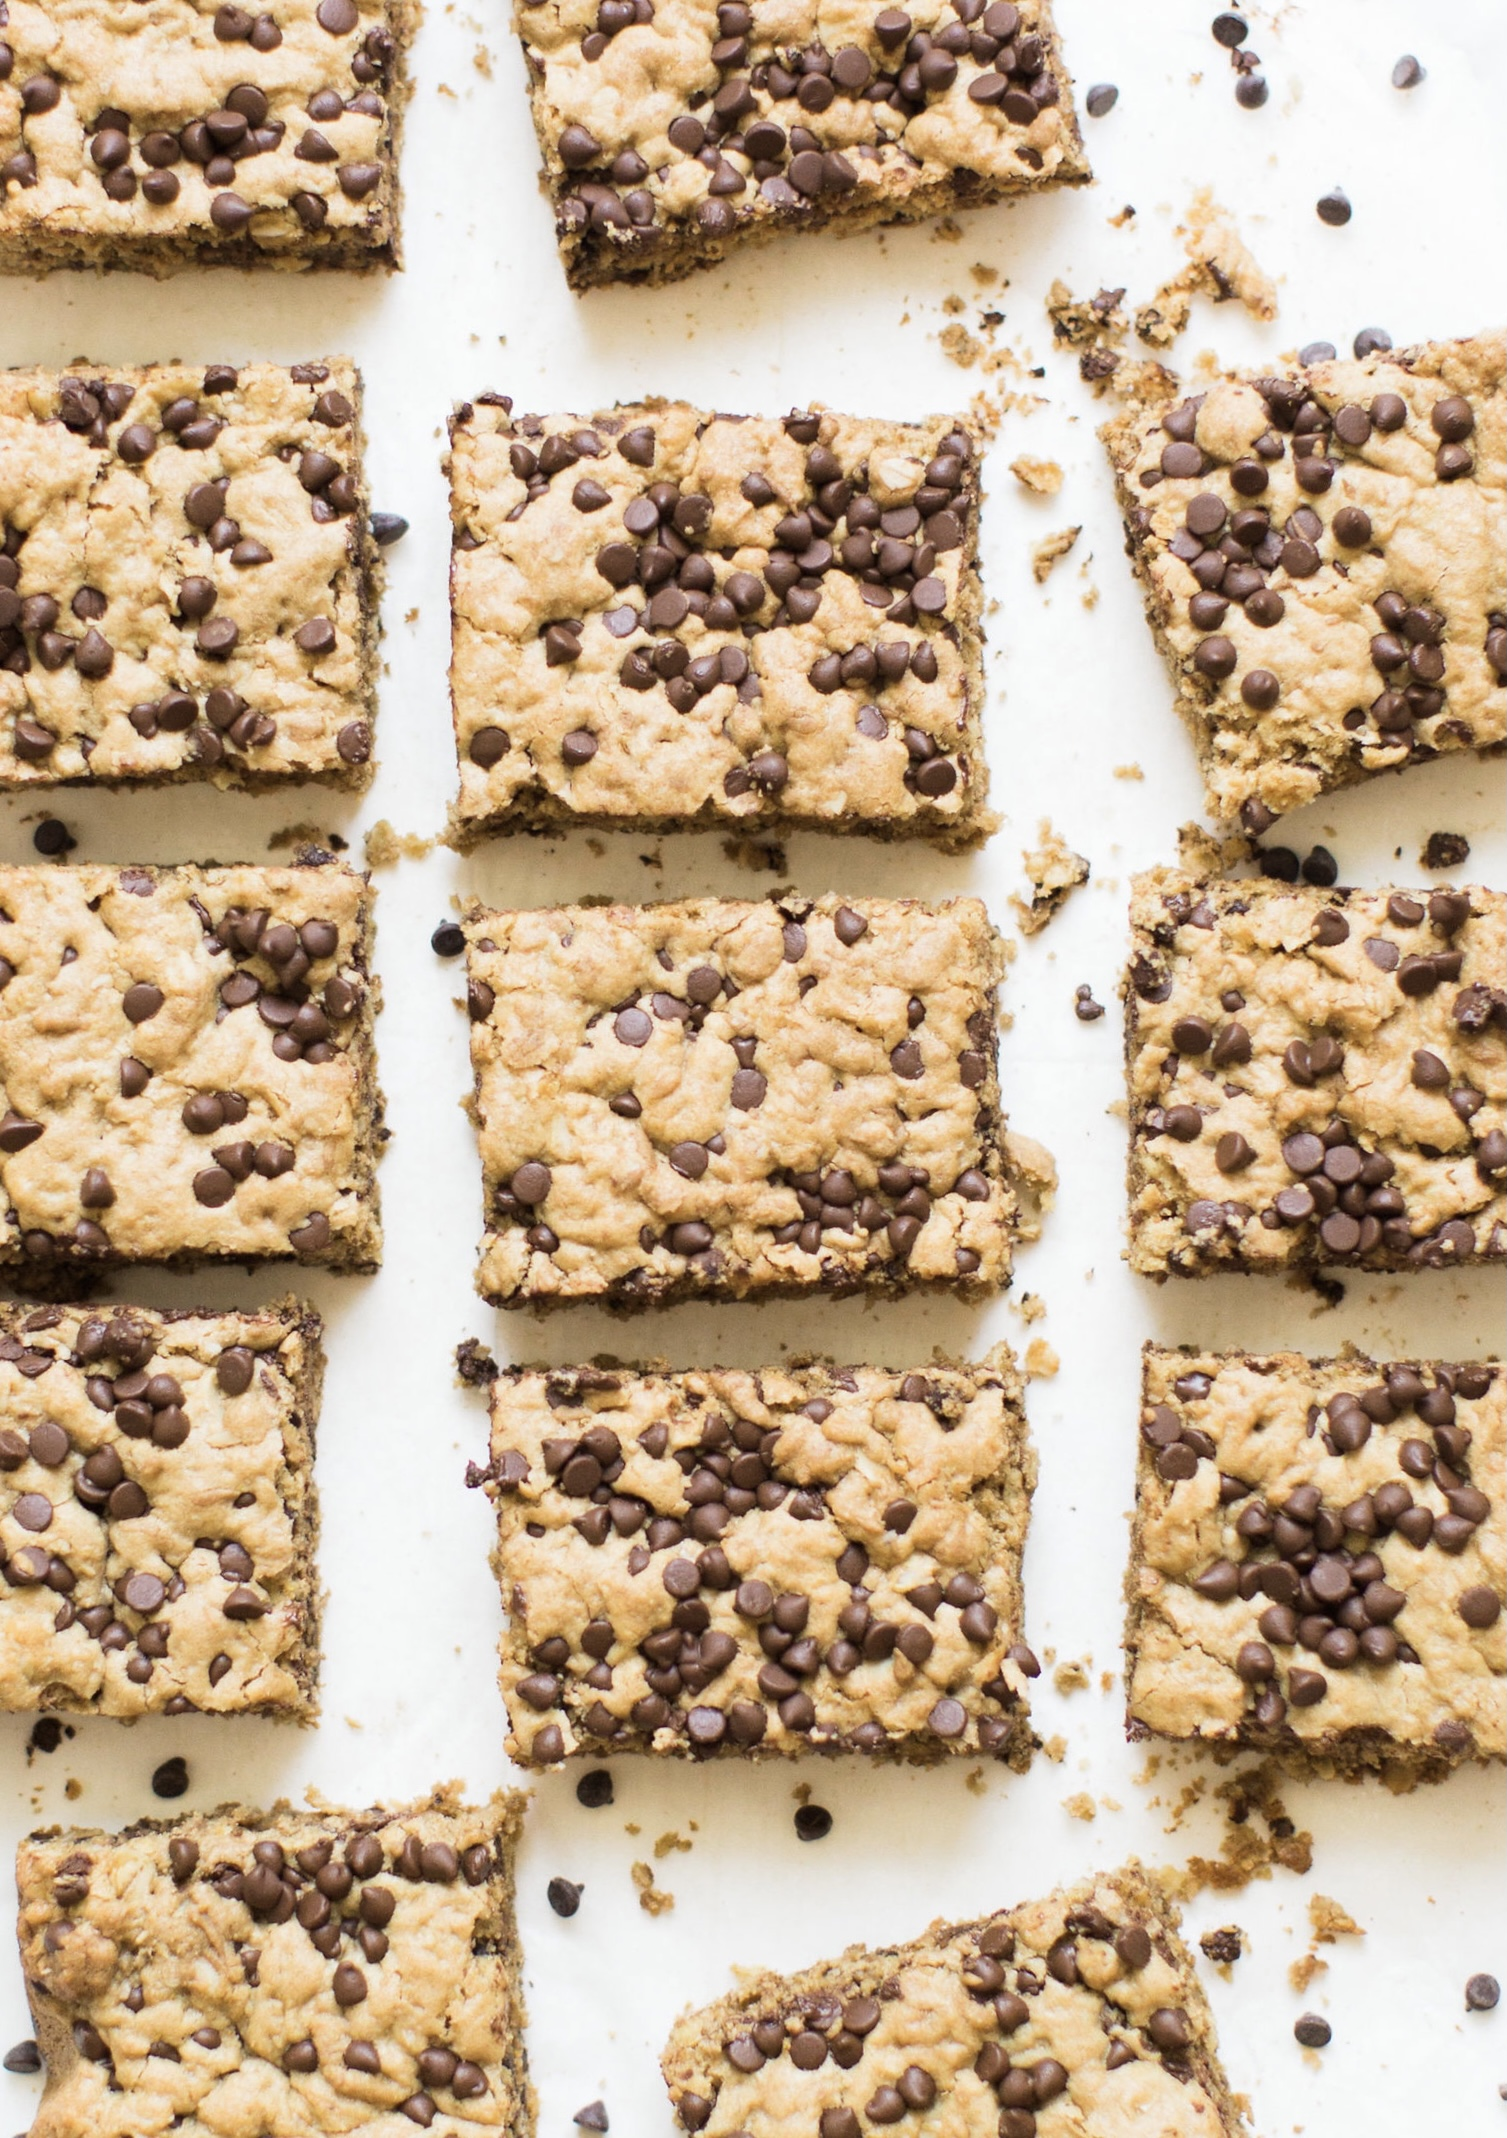 40+ Amazing Cookie Bars Recipes | Chocolate Chip Oatmeal Cookie Bars